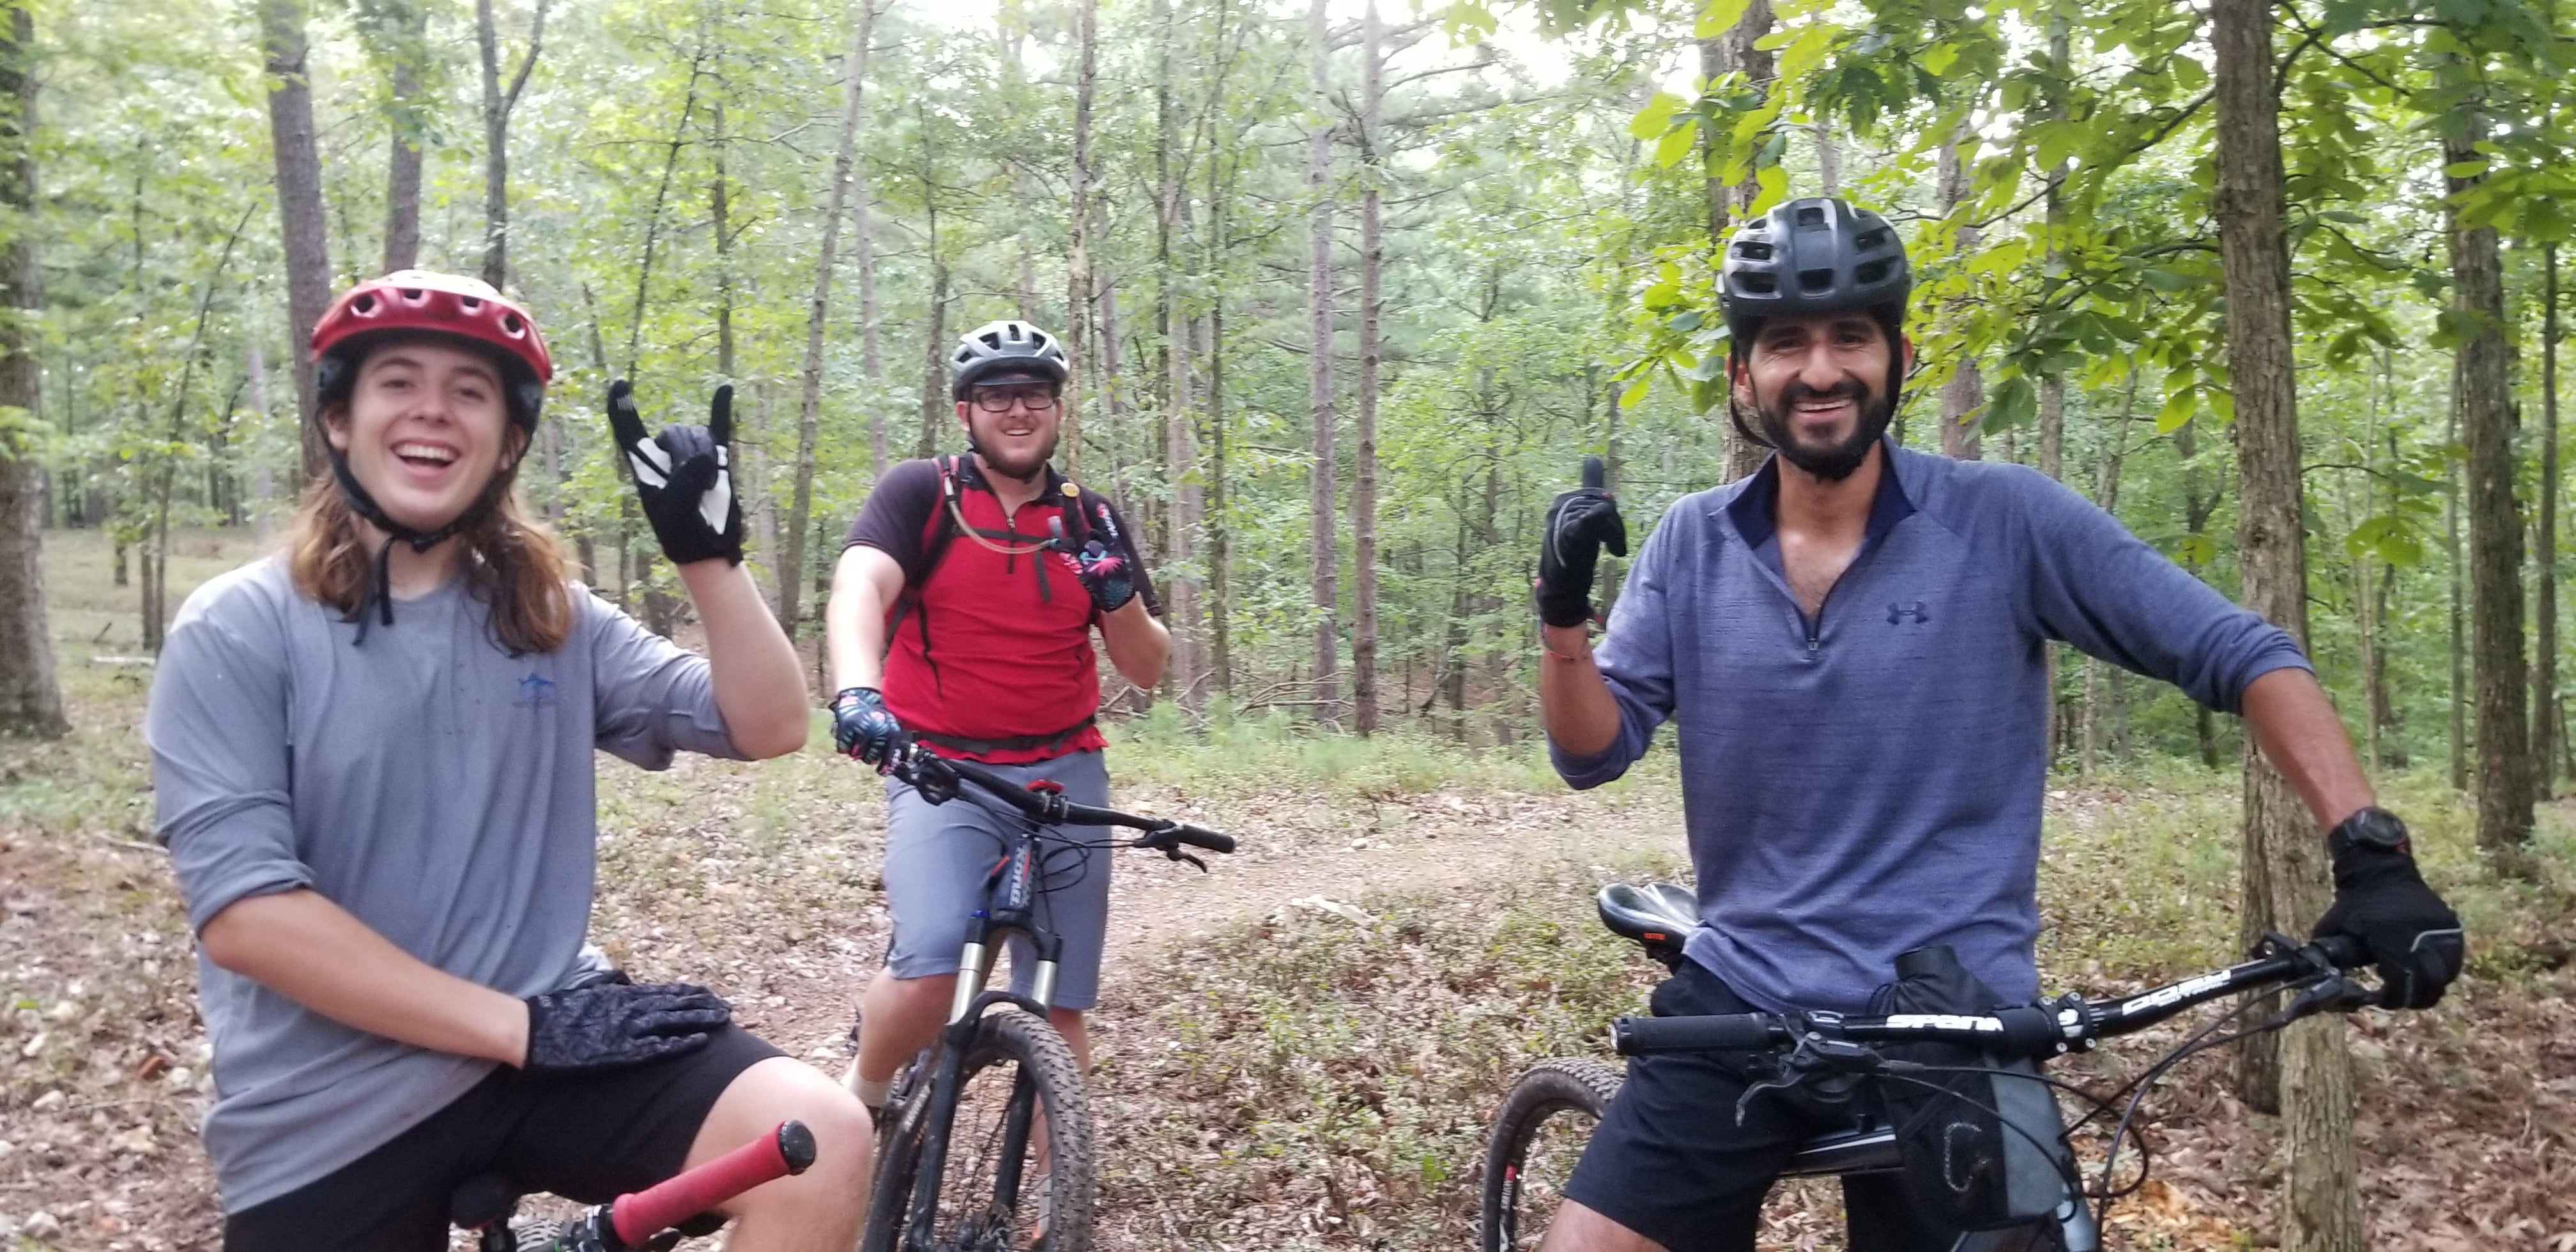 Group mountain bike ride in Bentonville